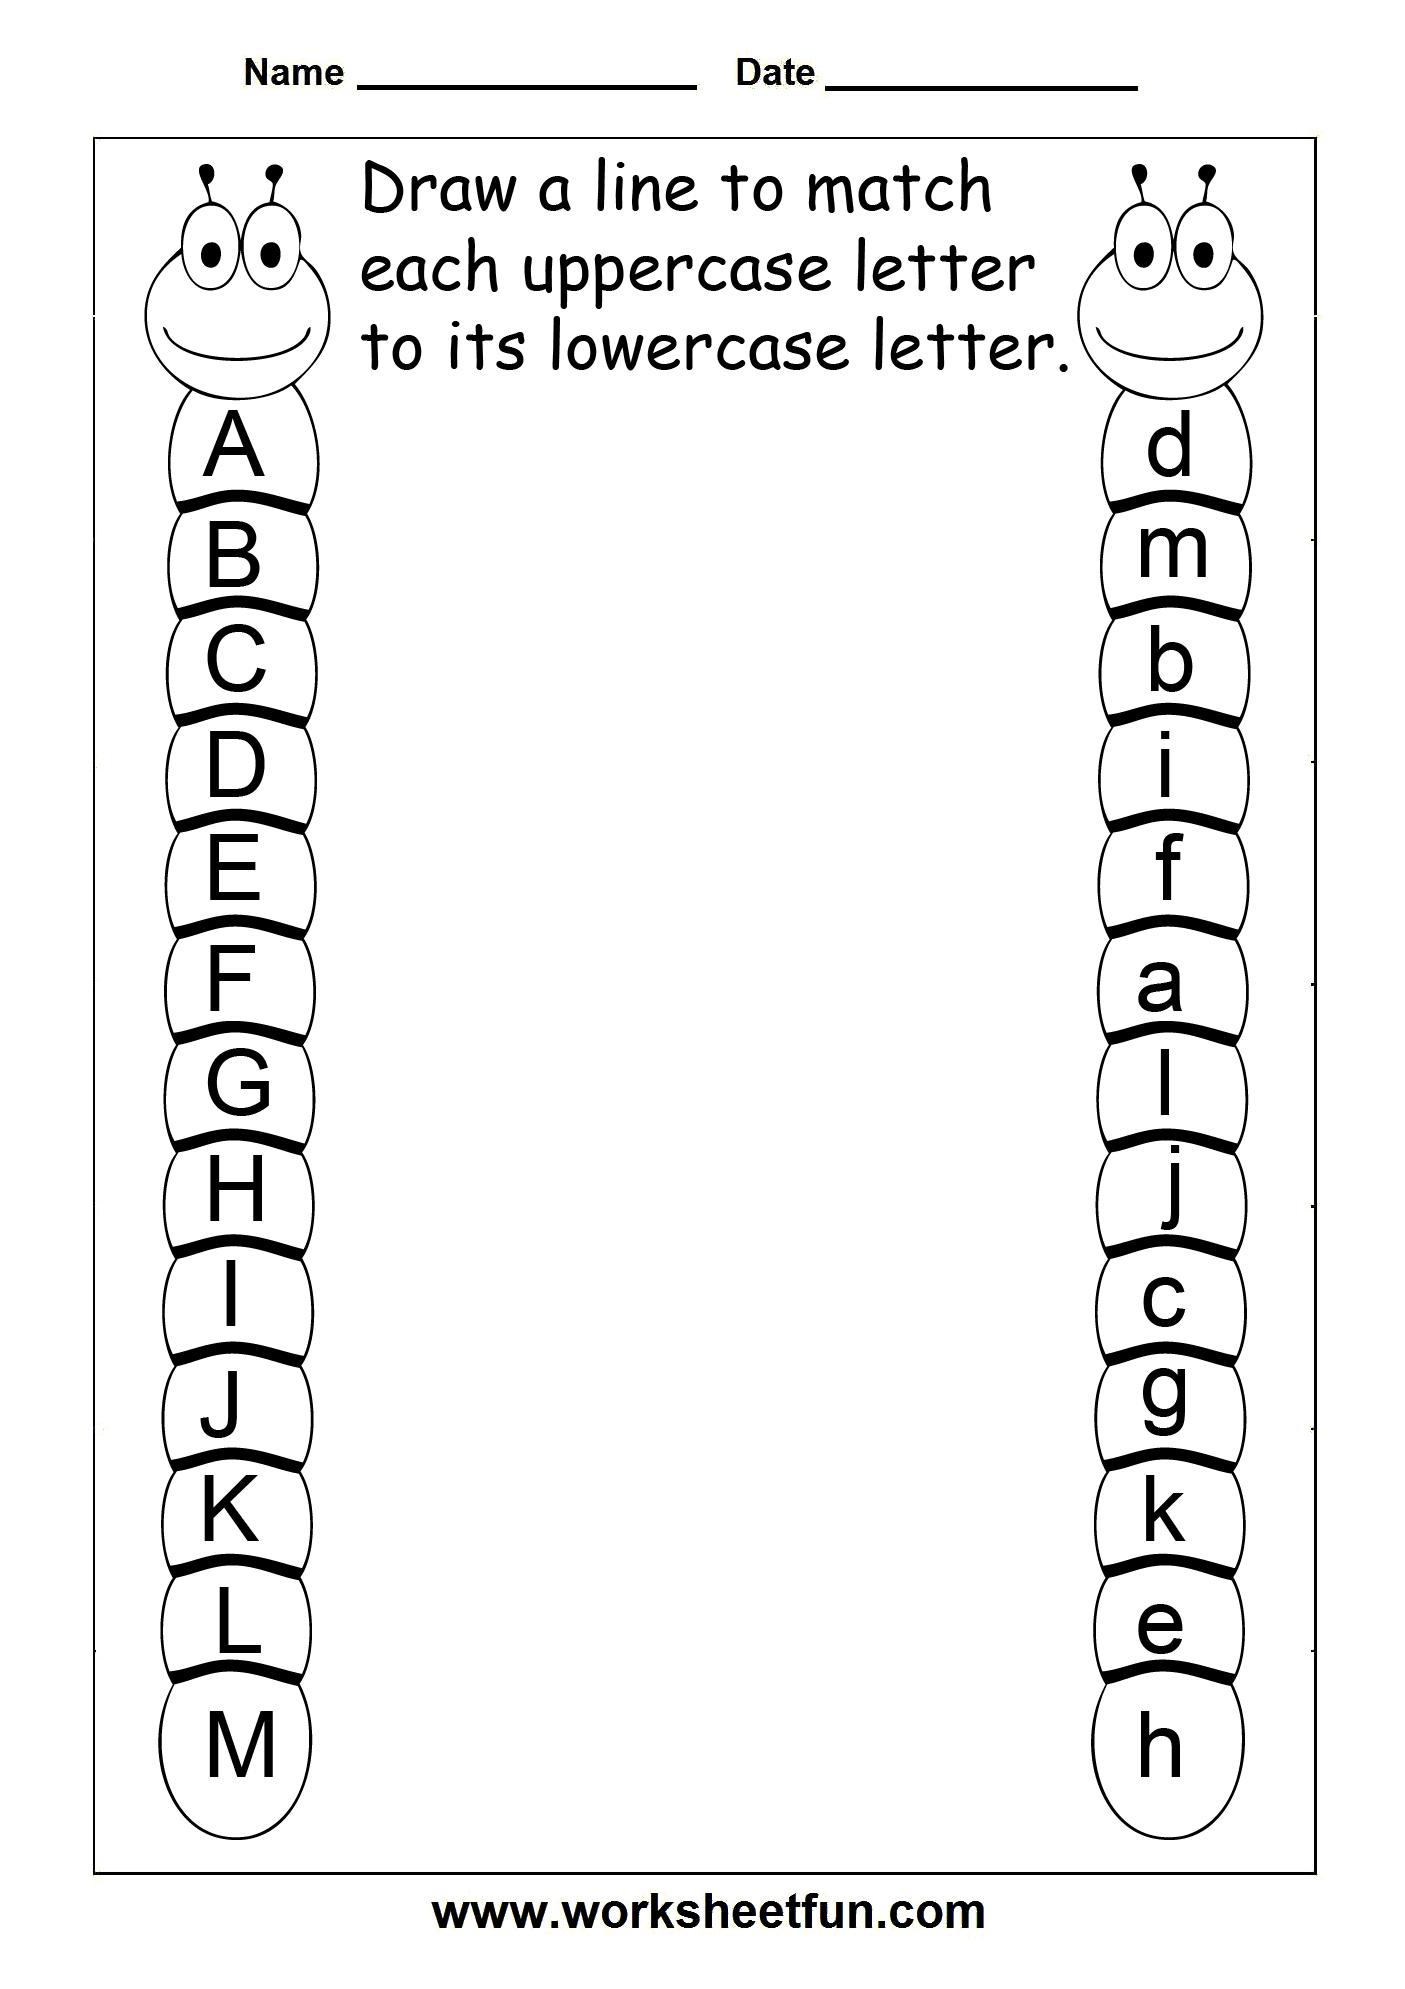 Worksheet Worksheets For Four Year Olds 17 best images about worksheets on pinterest count kindergarten and morning work